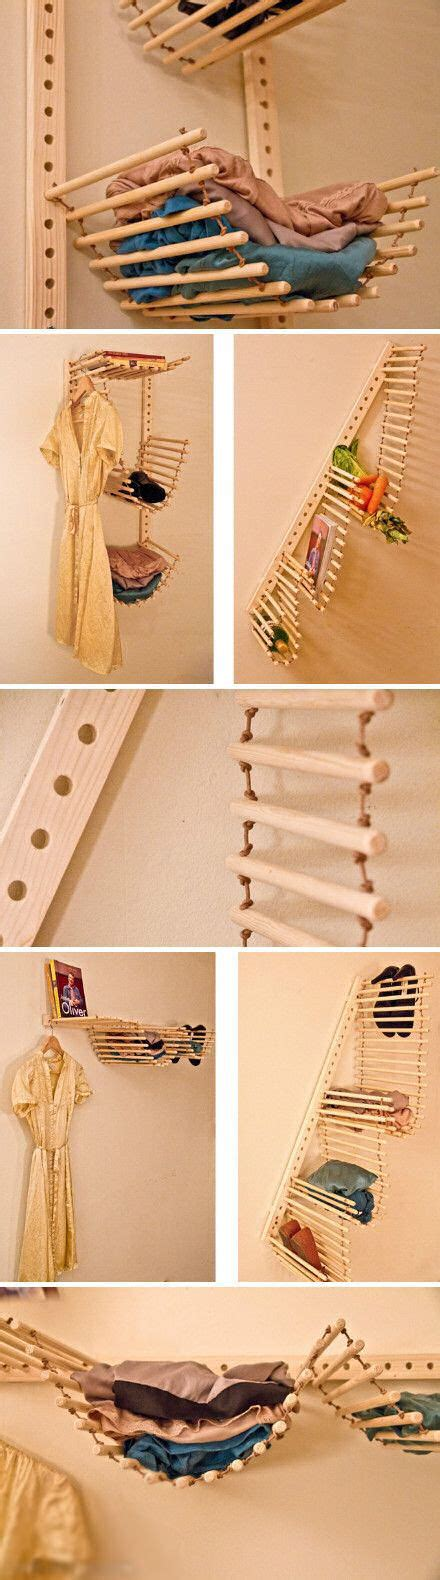 room organization diy diy room organization pictures photos and images for and